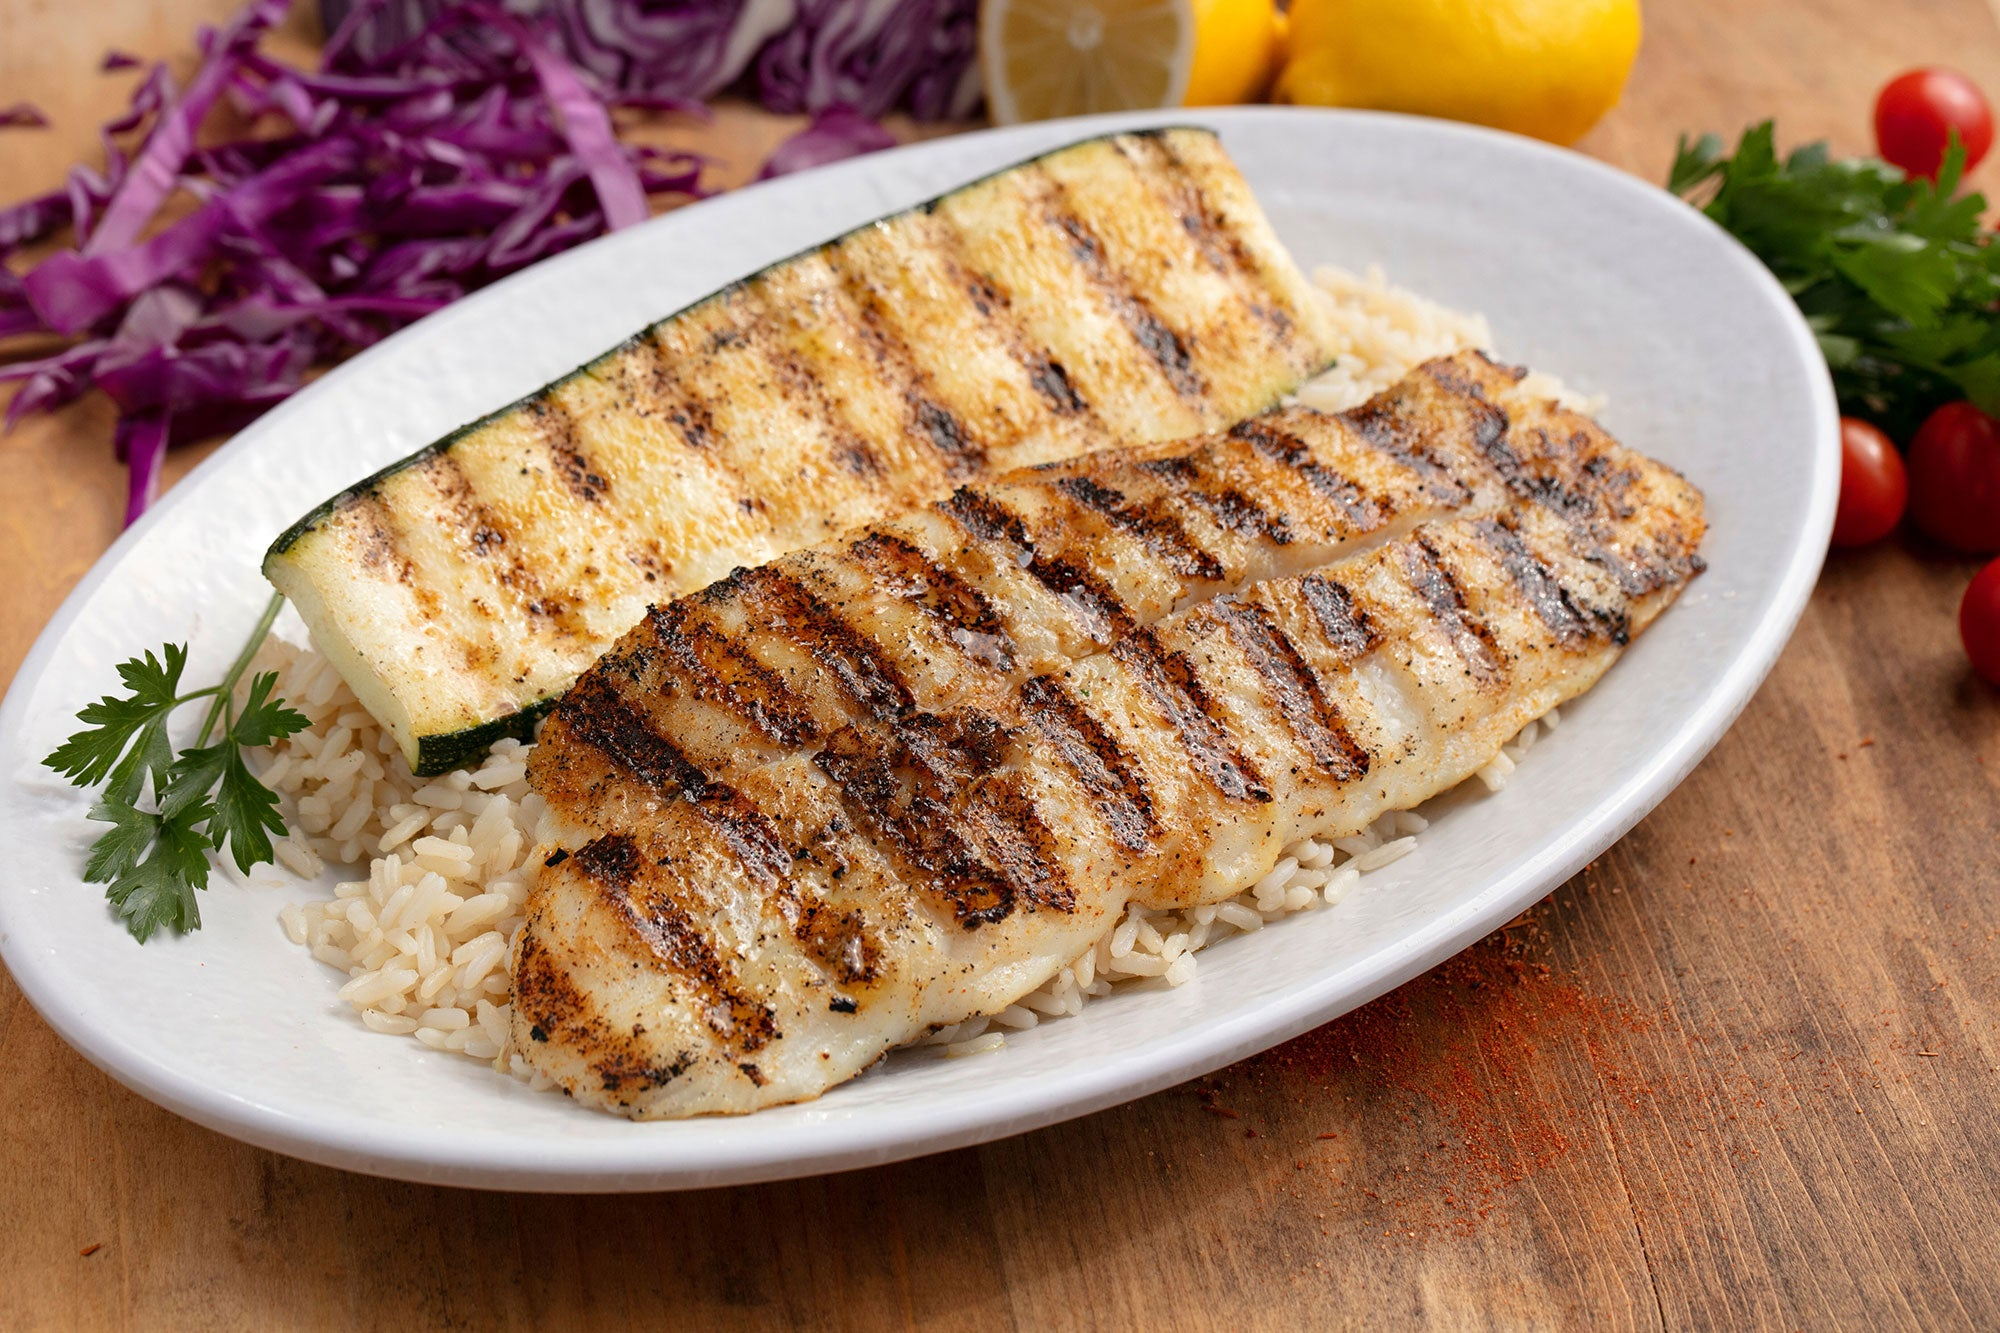 Grilled Tilapia at California Fish Grill